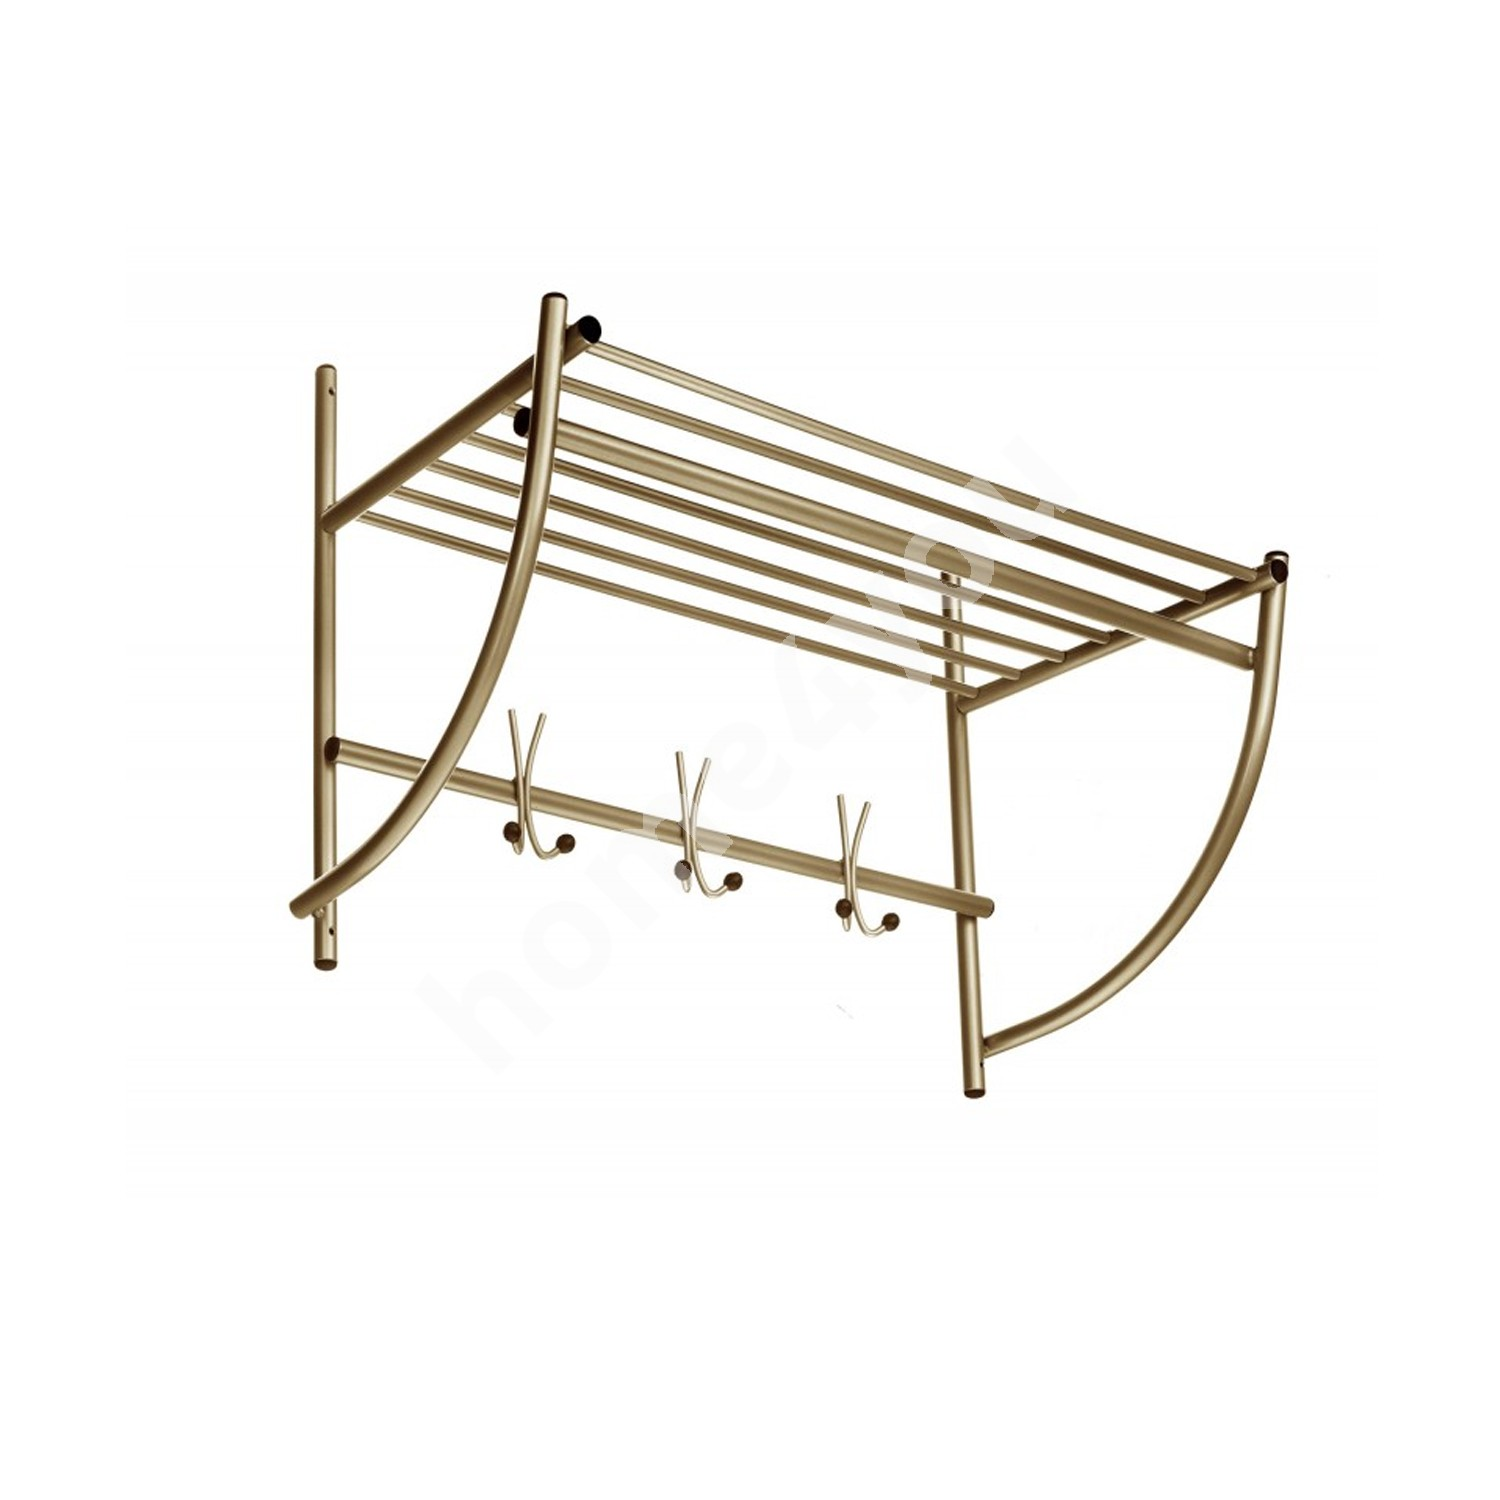 Wall coat rack ALTO, 75x50x35cm, golden